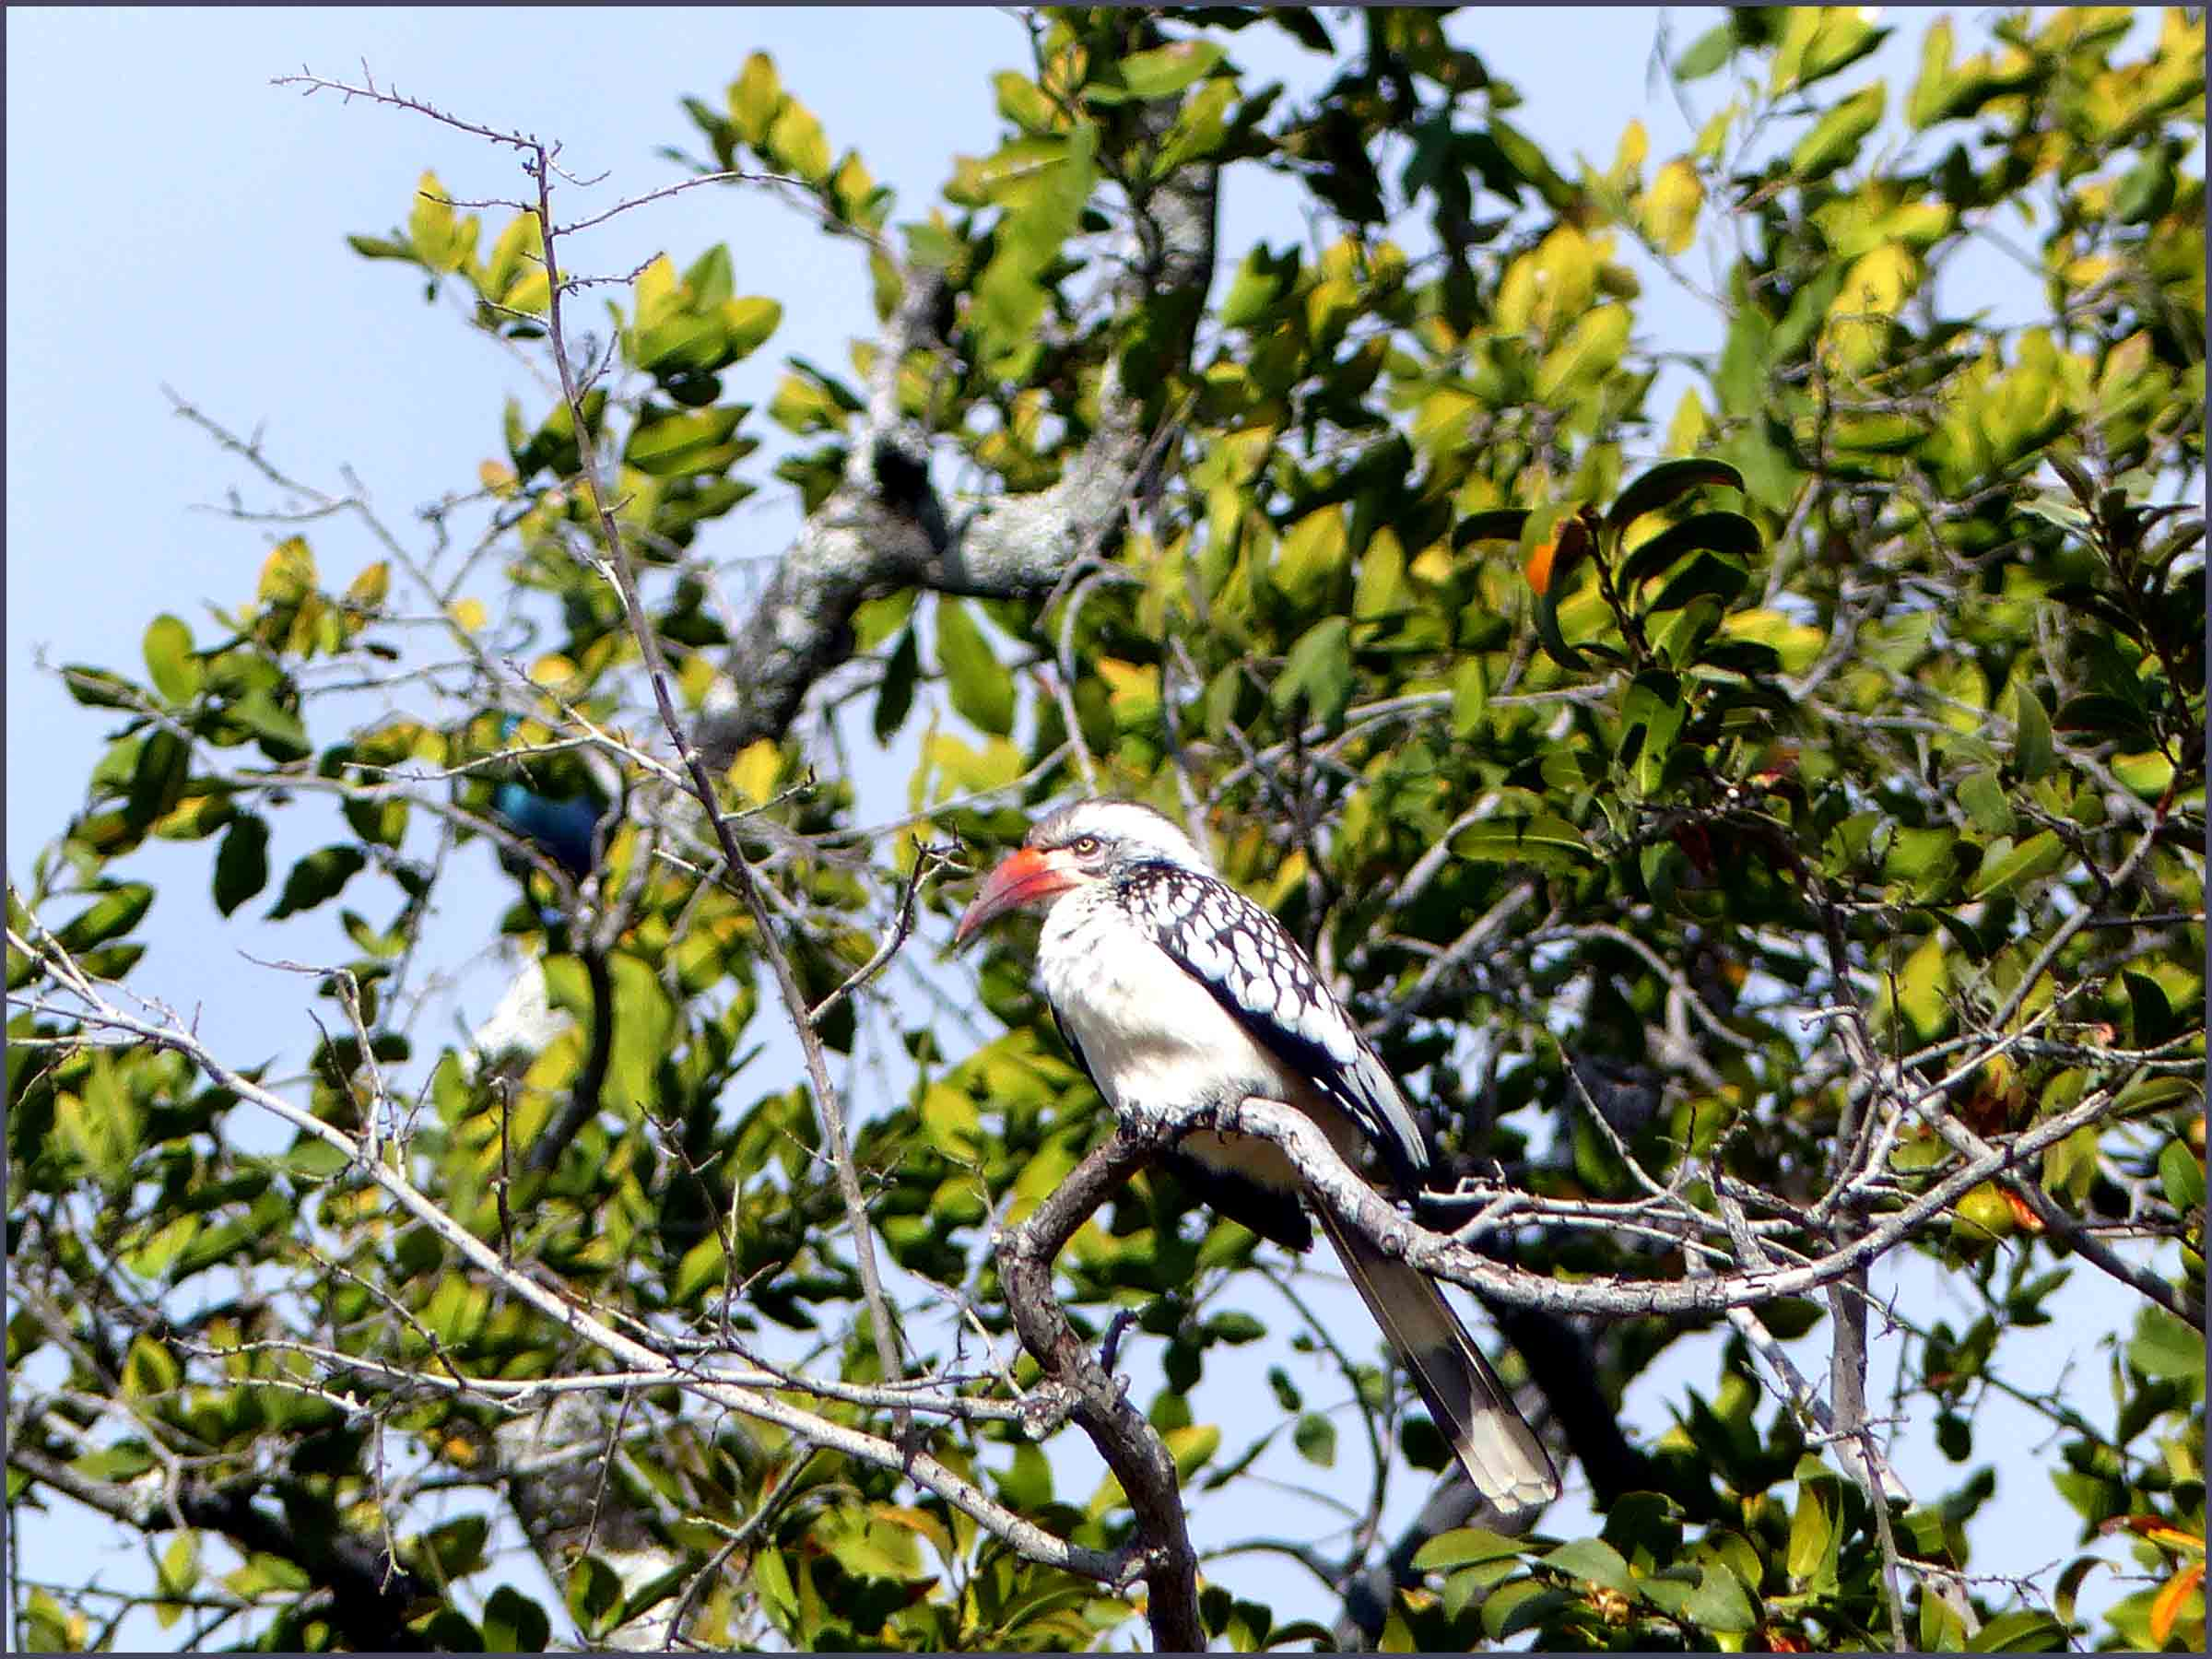 Bird with red bill in a tree